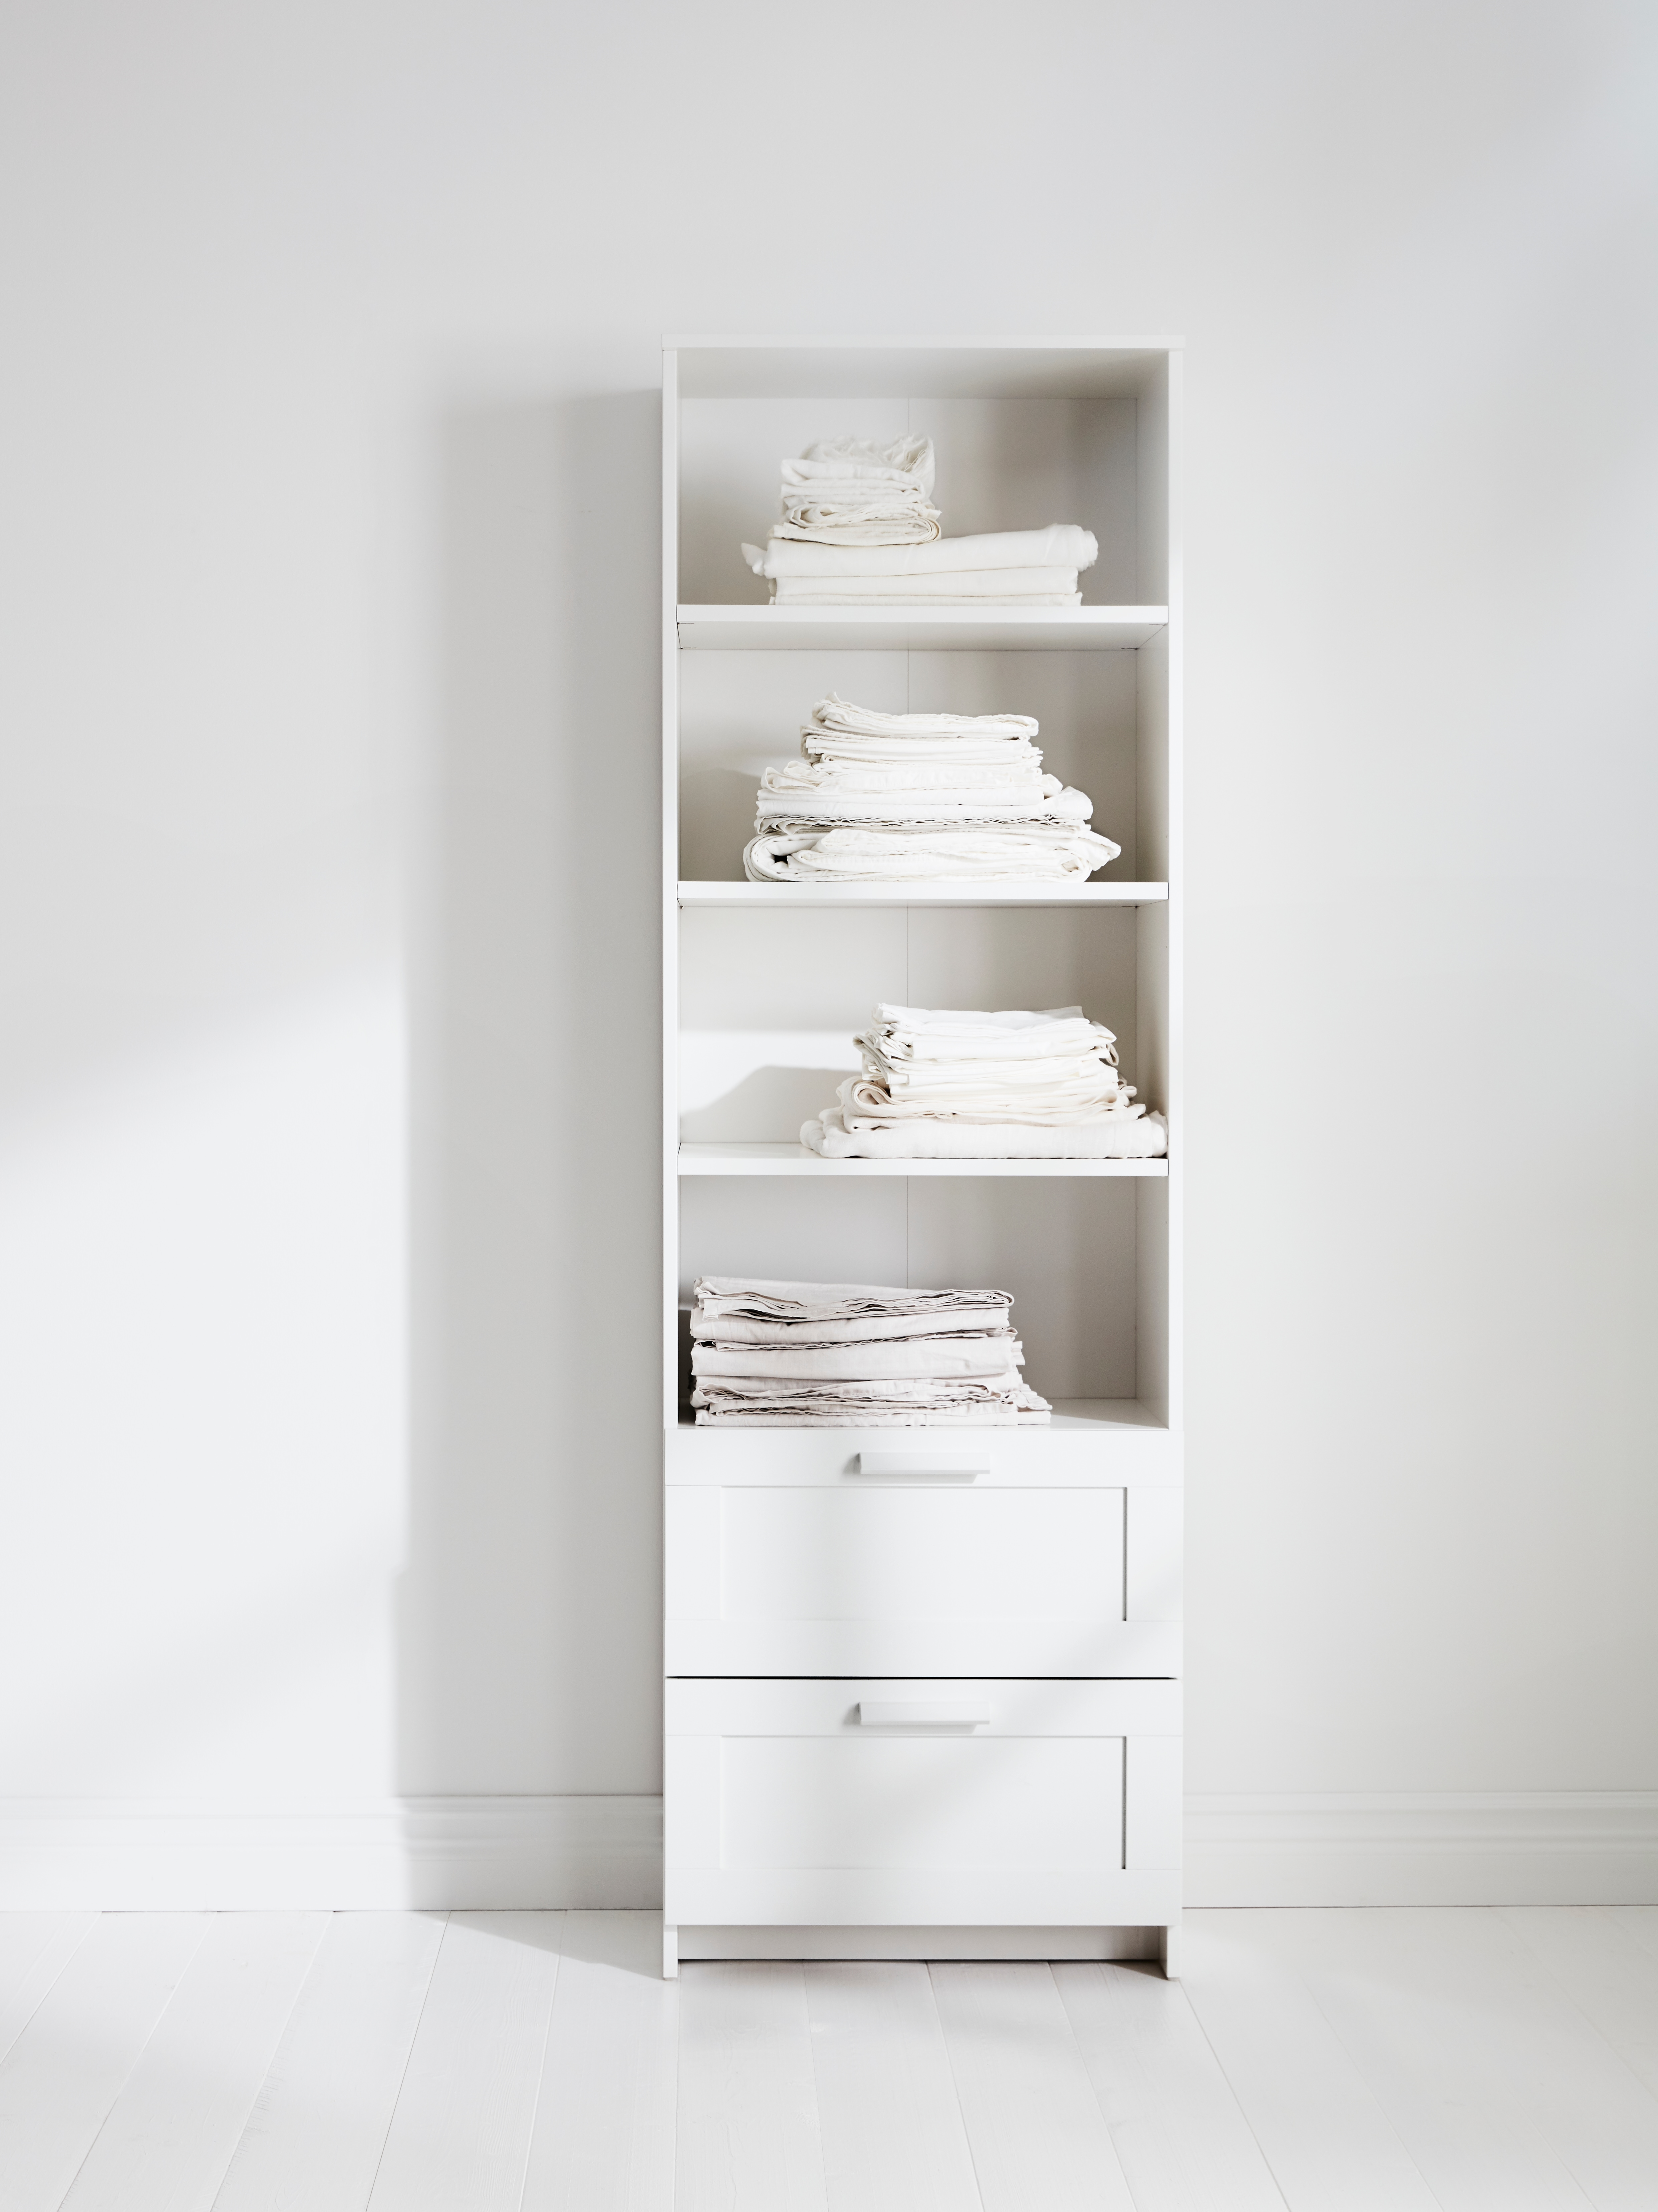 A white BRIMNES bookcase has two drawers and four shelves. It is against a white wall, holding stacks of folded white linens.